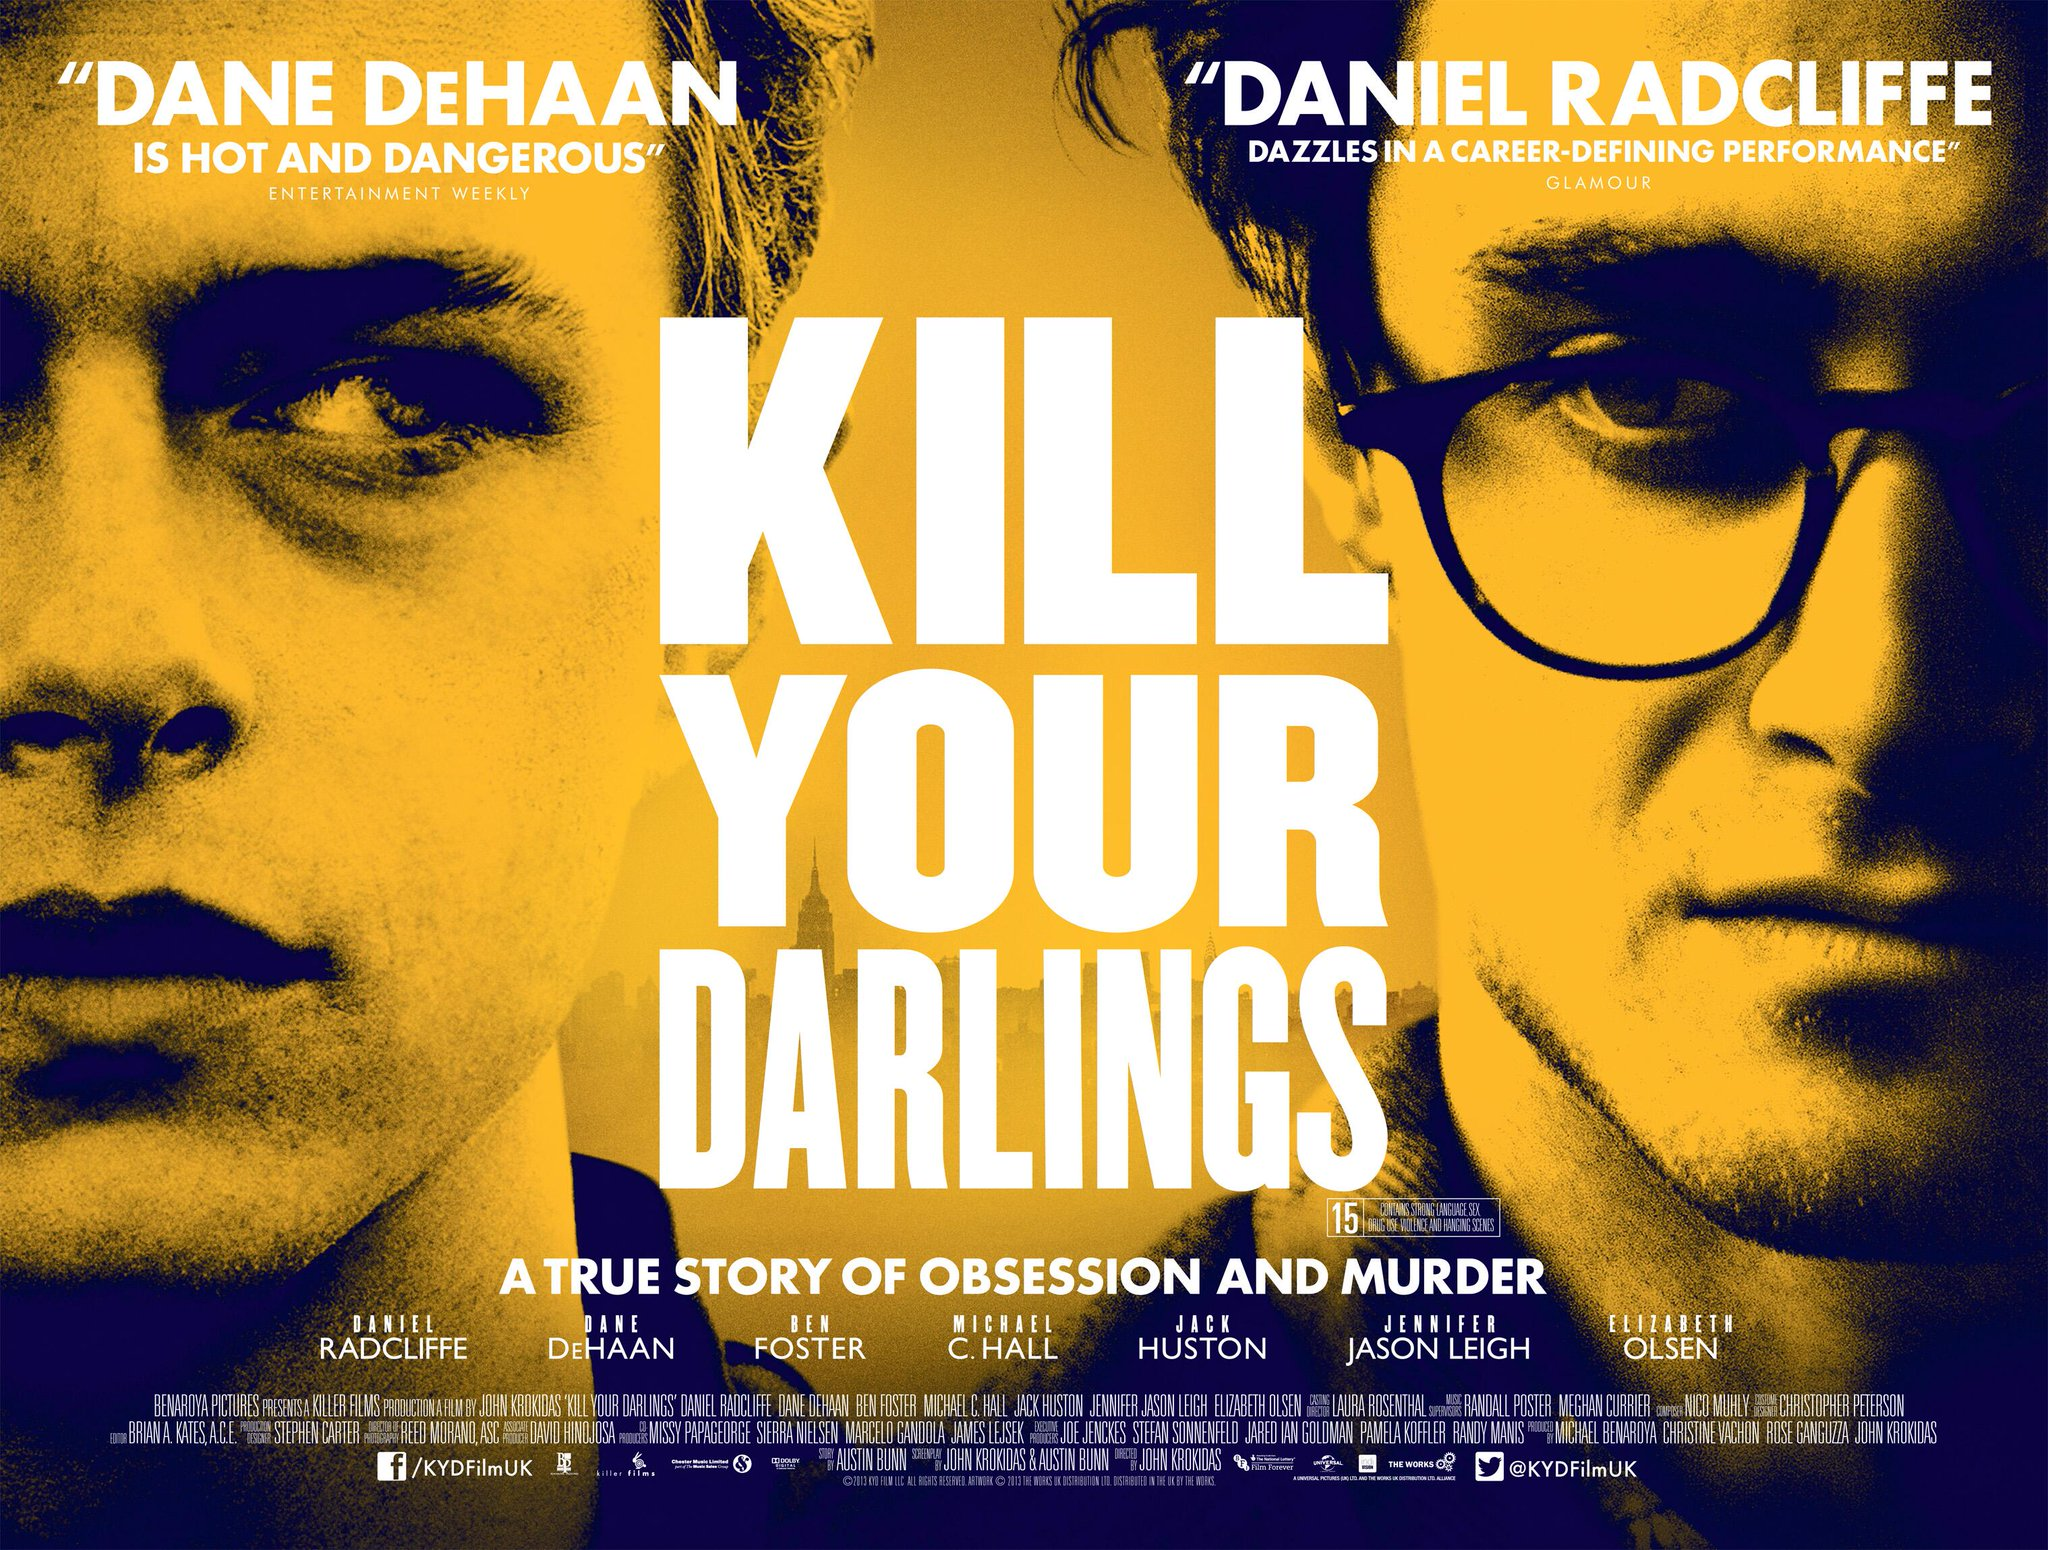 RT @KYDFilmUK: KILL YOUR DARLINGS - OUT TODAY!   Book your tickets here: http://t.co/vIPQJBaUHN http://t.co/EIpyW2jUDm